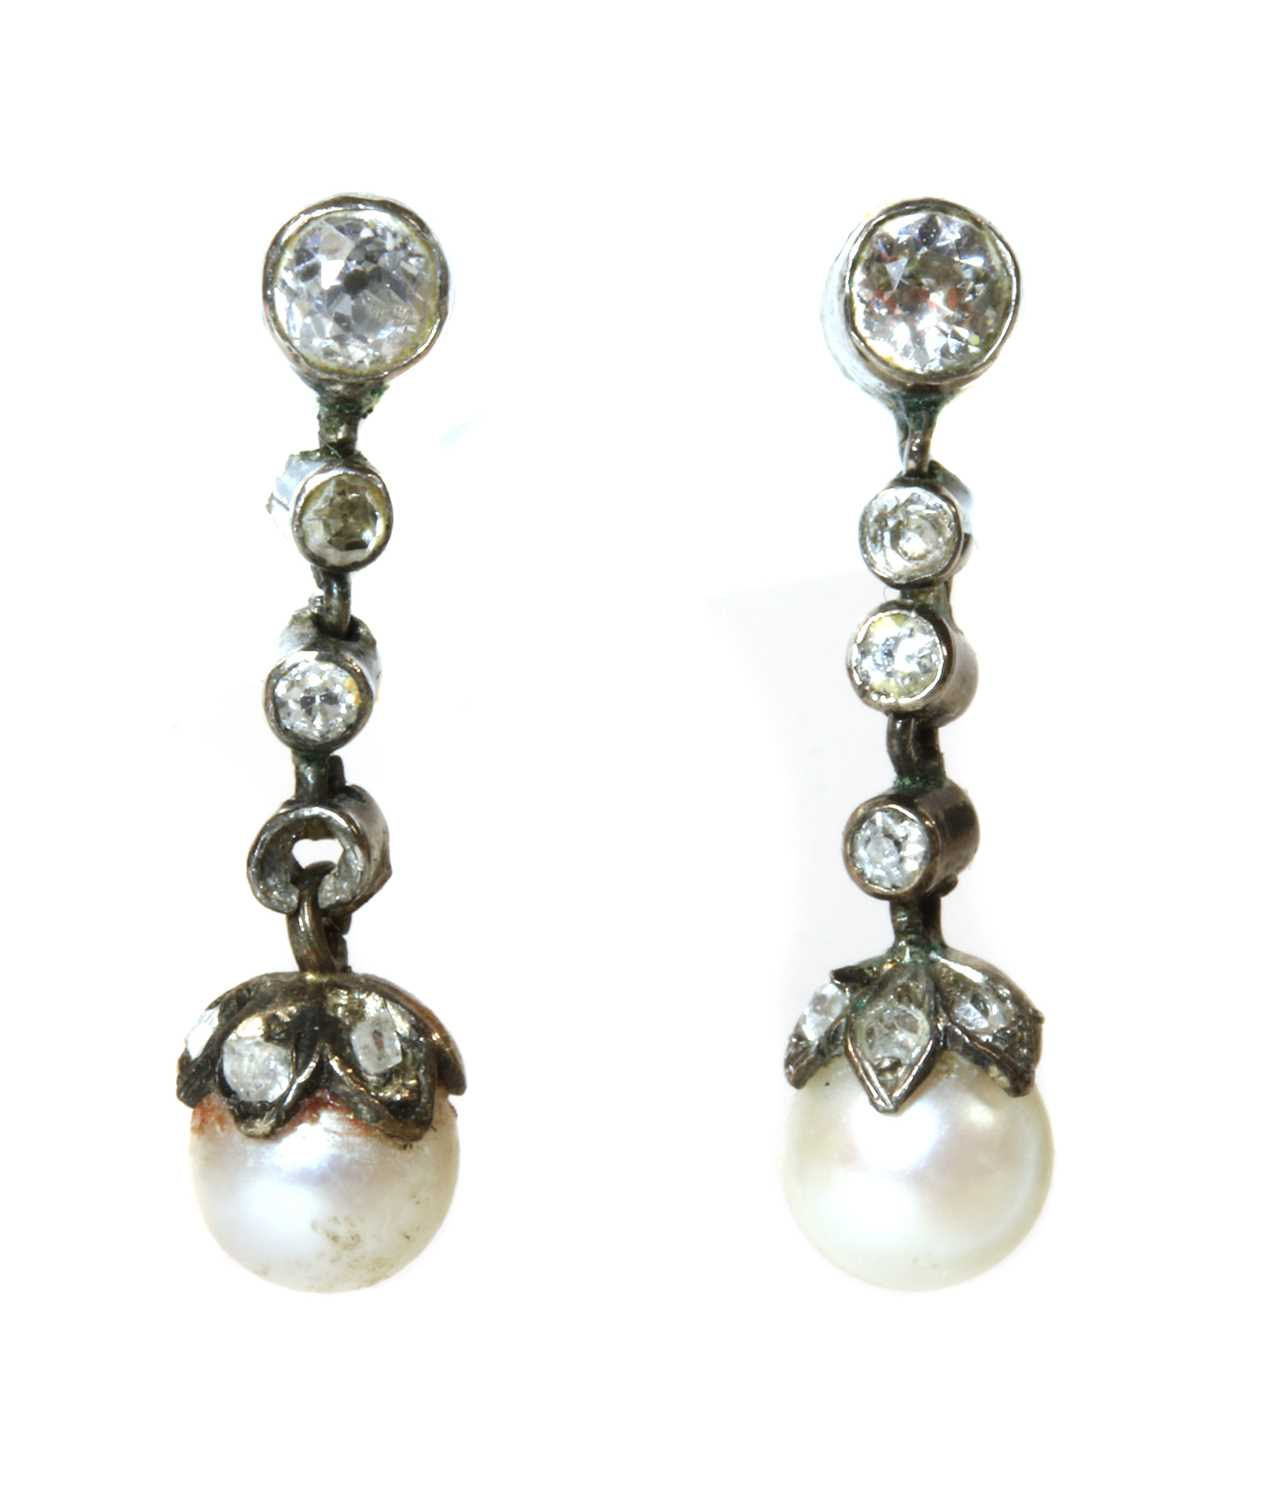 A cased pair of early 20th century pearl and diamond drop earrings,